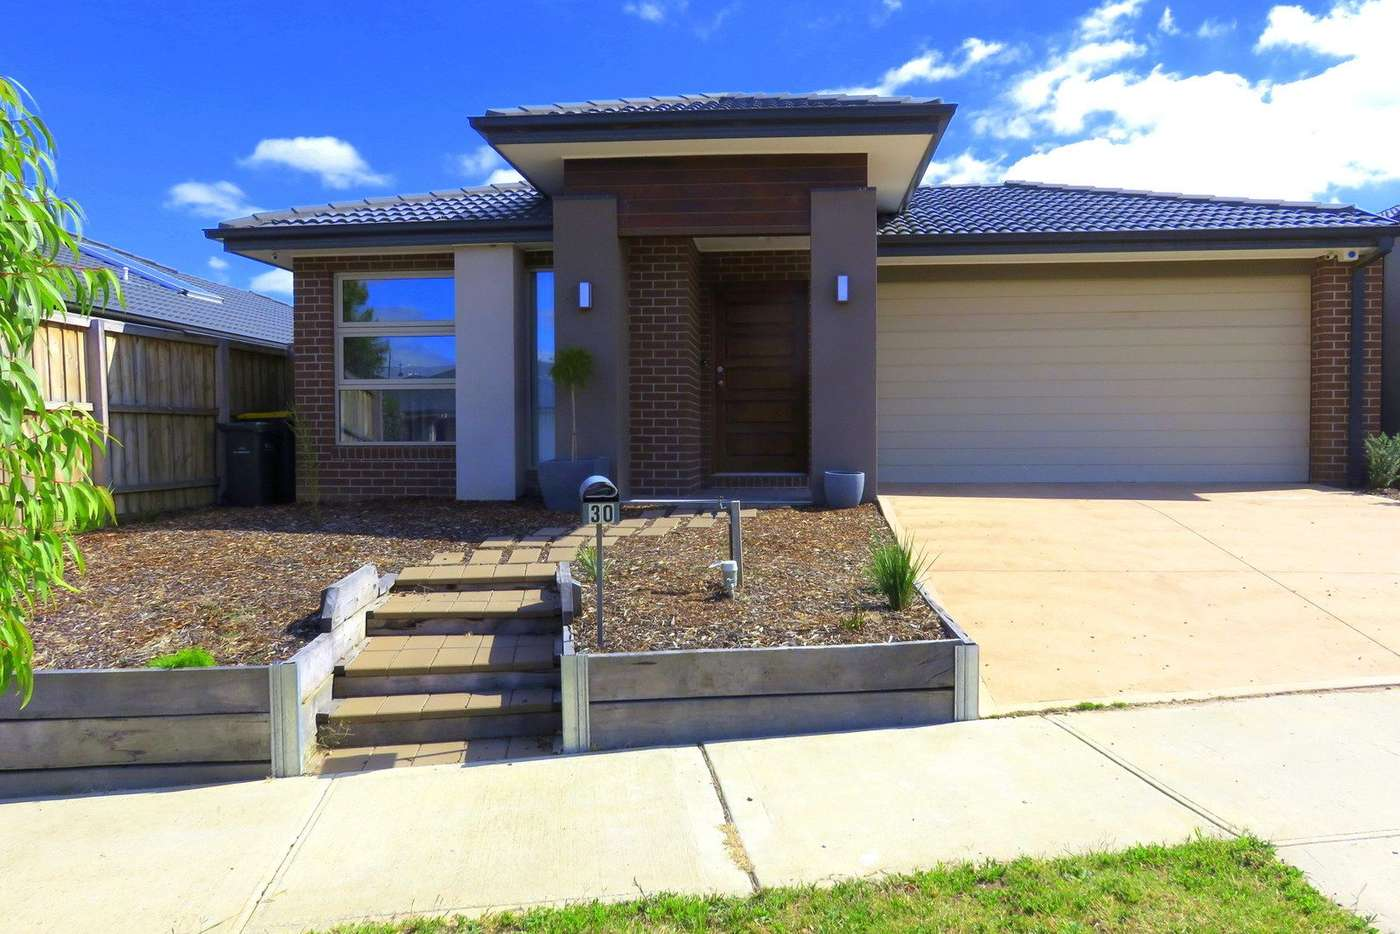 Main view of Homely house listing, 30 Gallivant Drive, Doreen VIC 3754